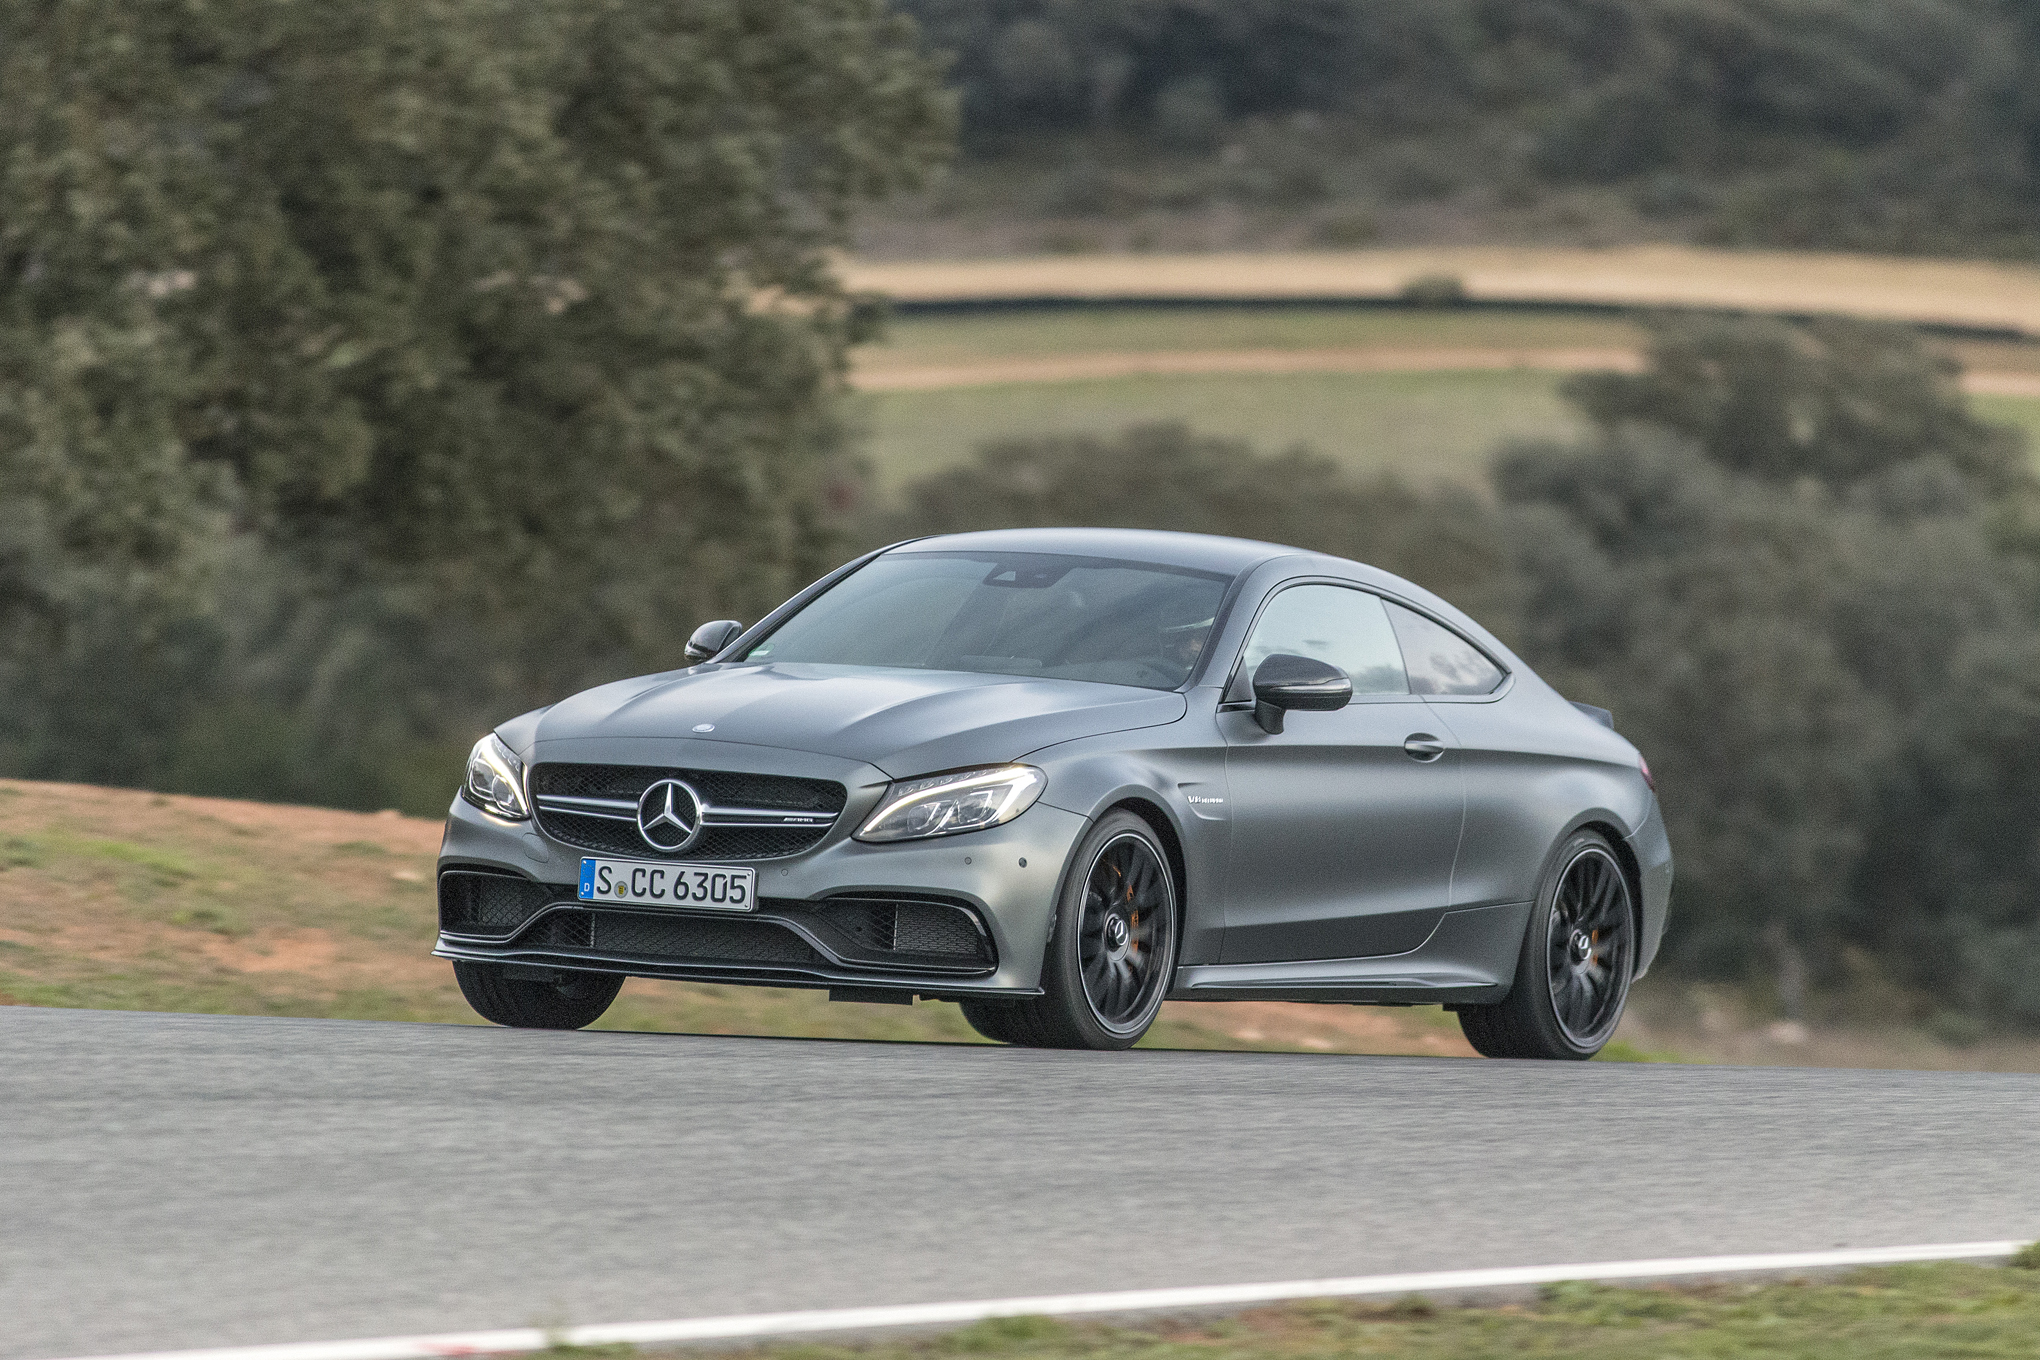 2017 Mercedes Amg C63 S Coupe First Drive